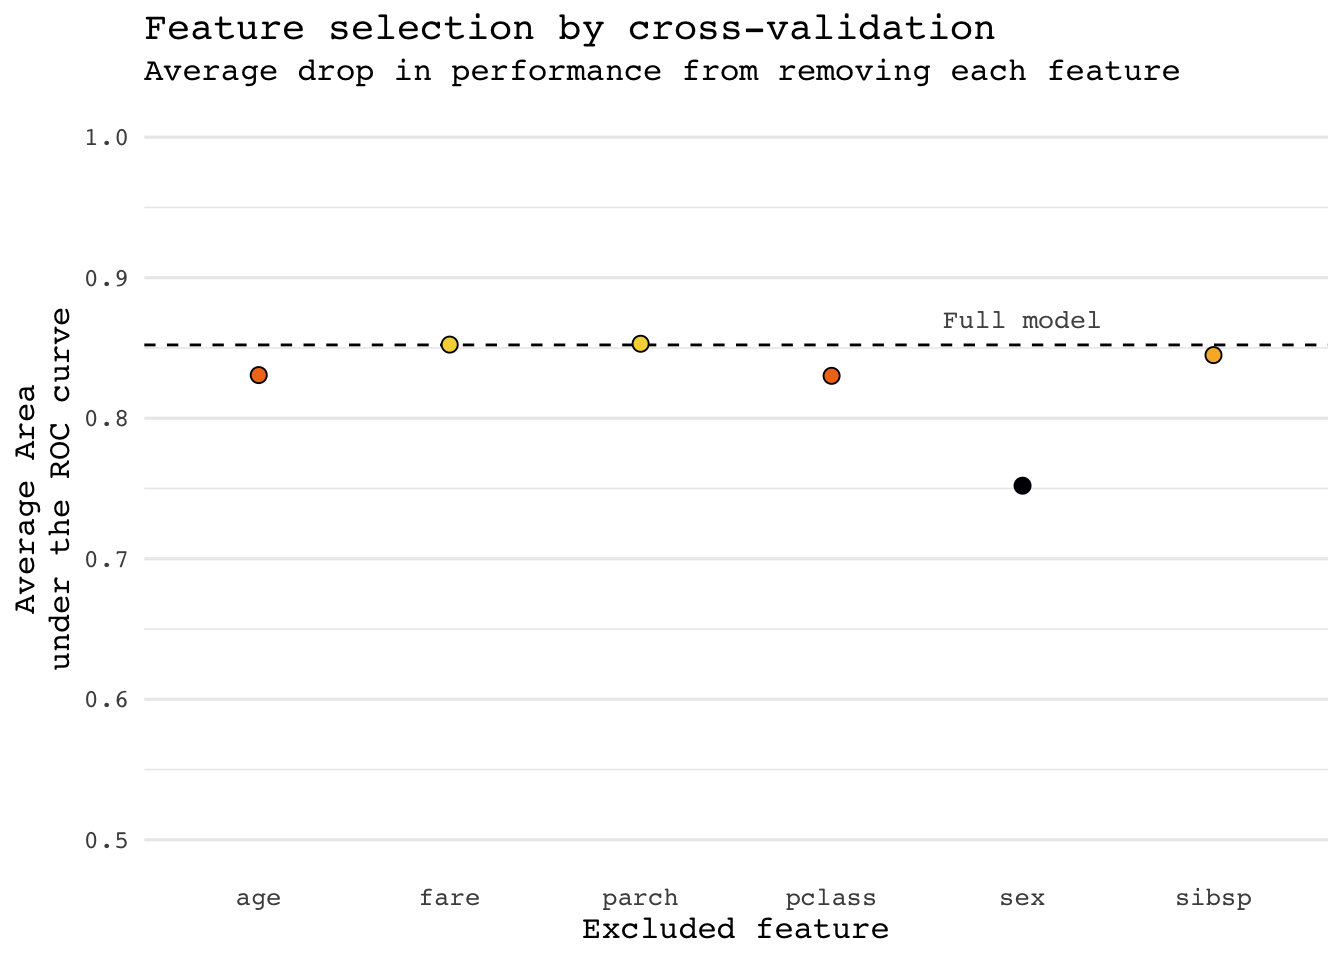 Feature selection by cross-validation with sparklyr - Ed Berry